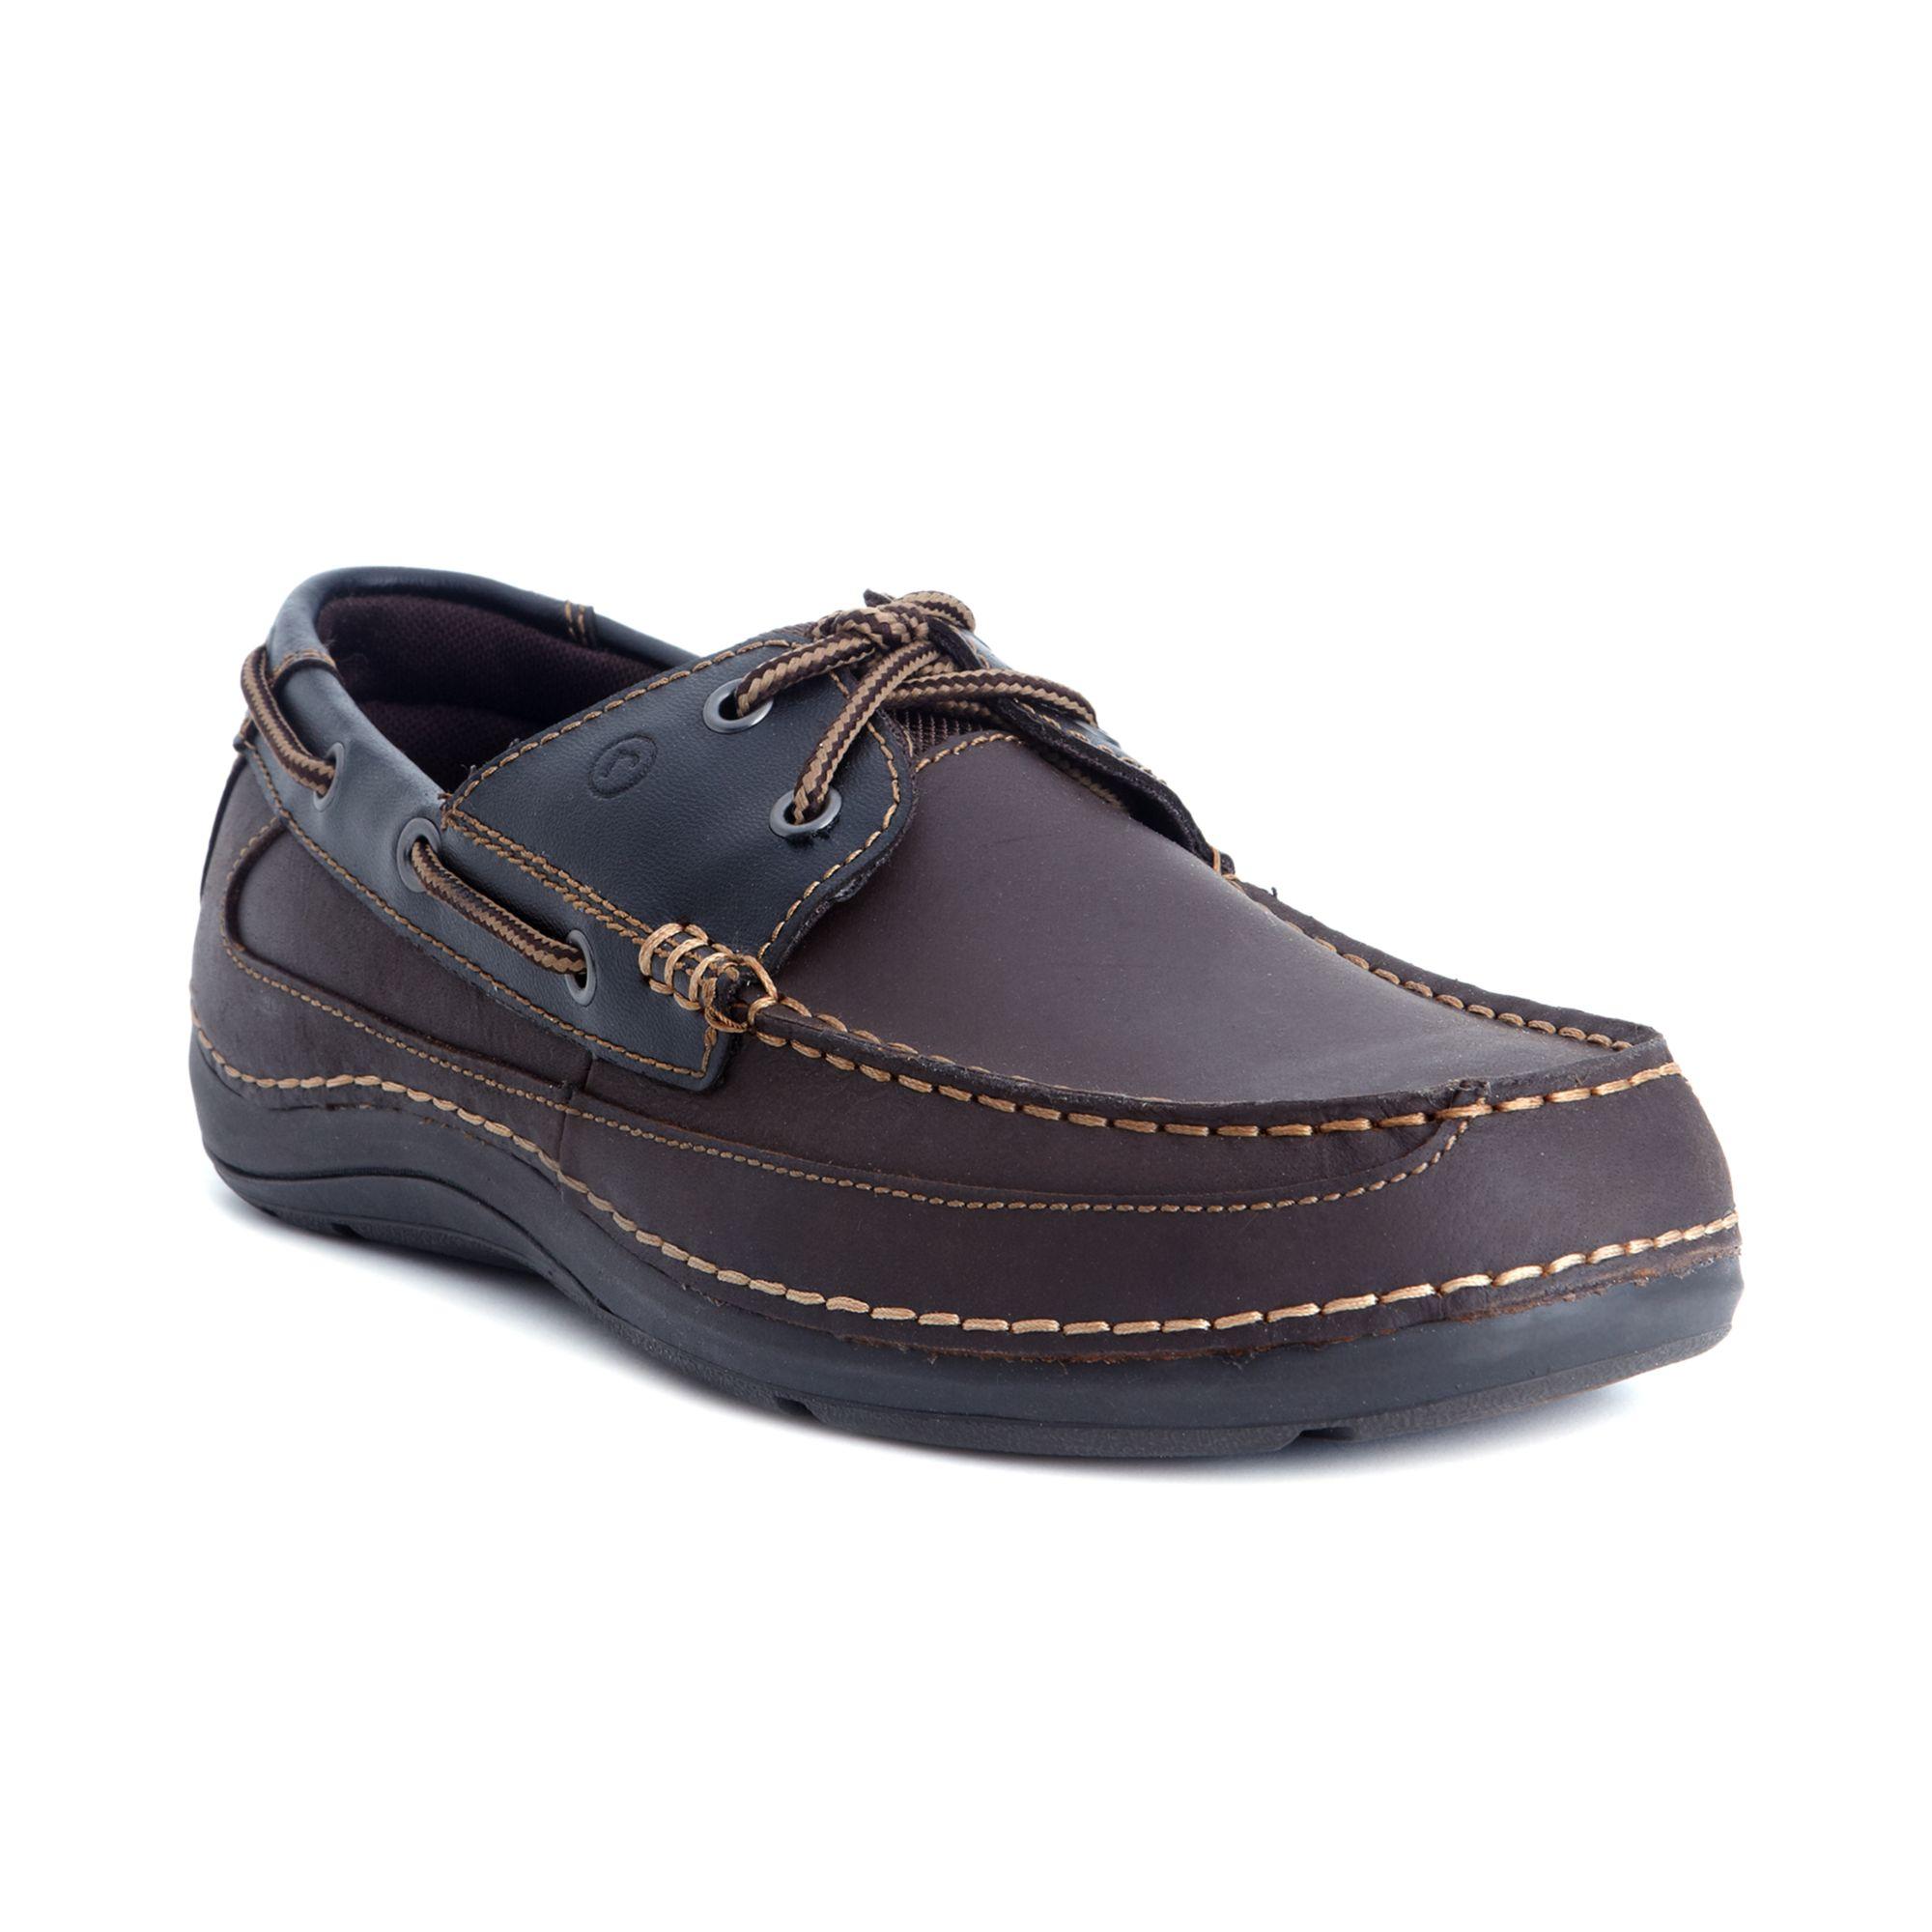 Rockport Shoal Lake Sebert 2eye Boat Shoes in Brown for Men (Cocoa